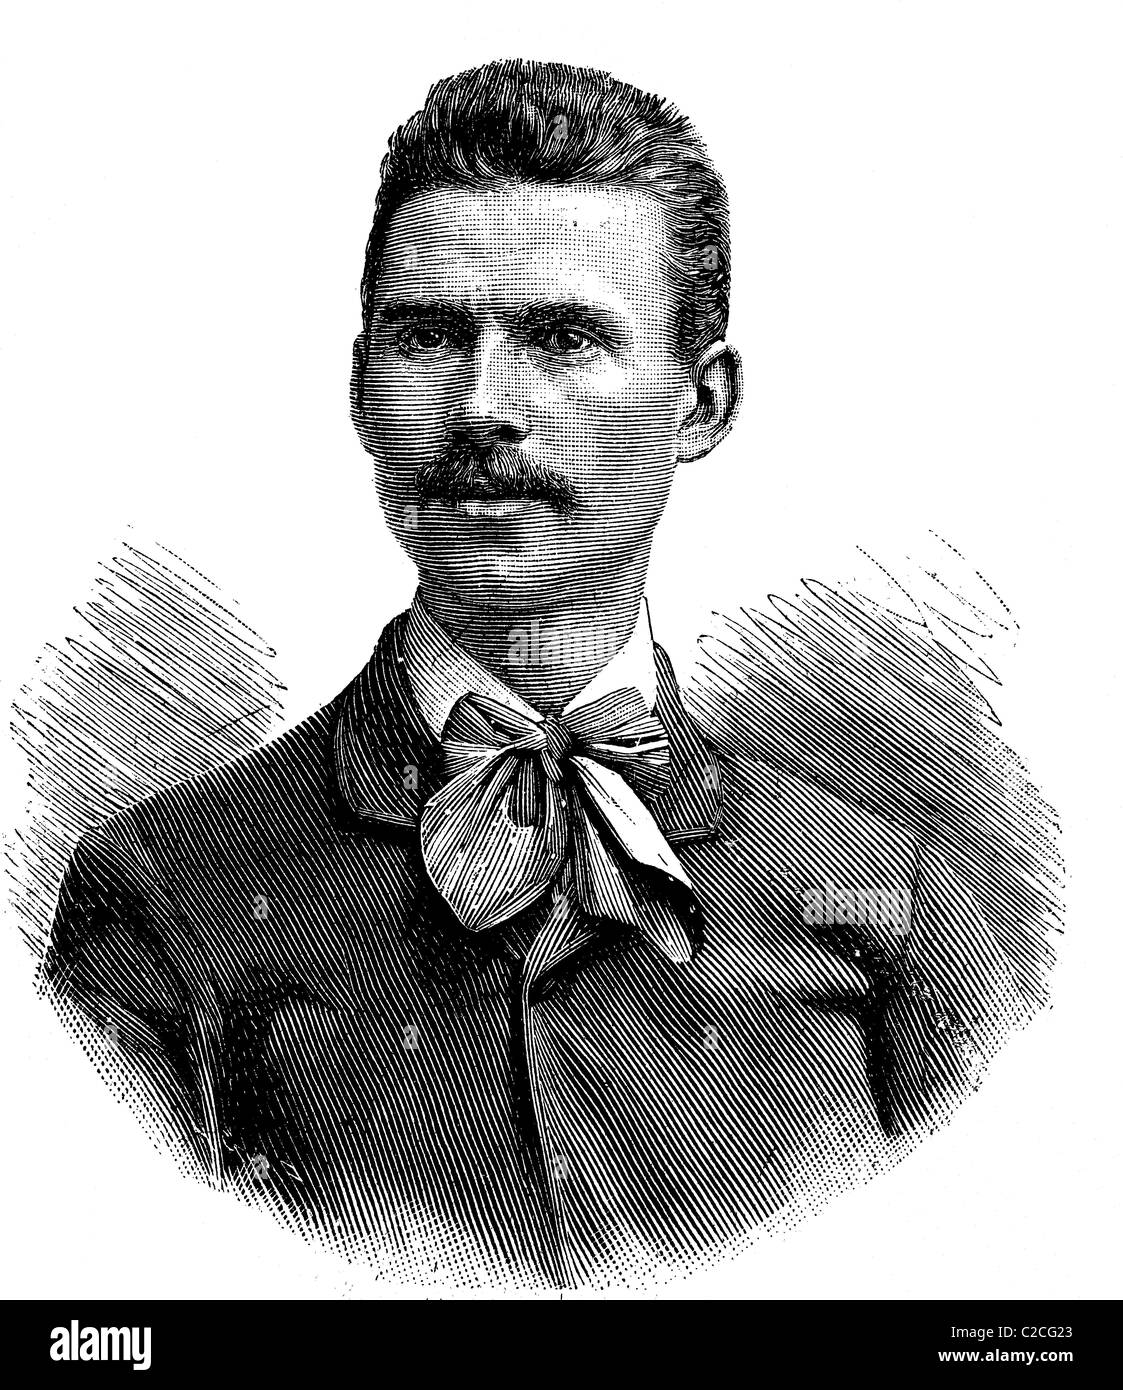 Arno Elsaesser, one of the winners of the distance march Vienna - Berlin 1893, historical illustration circa 1893 - Stock Image